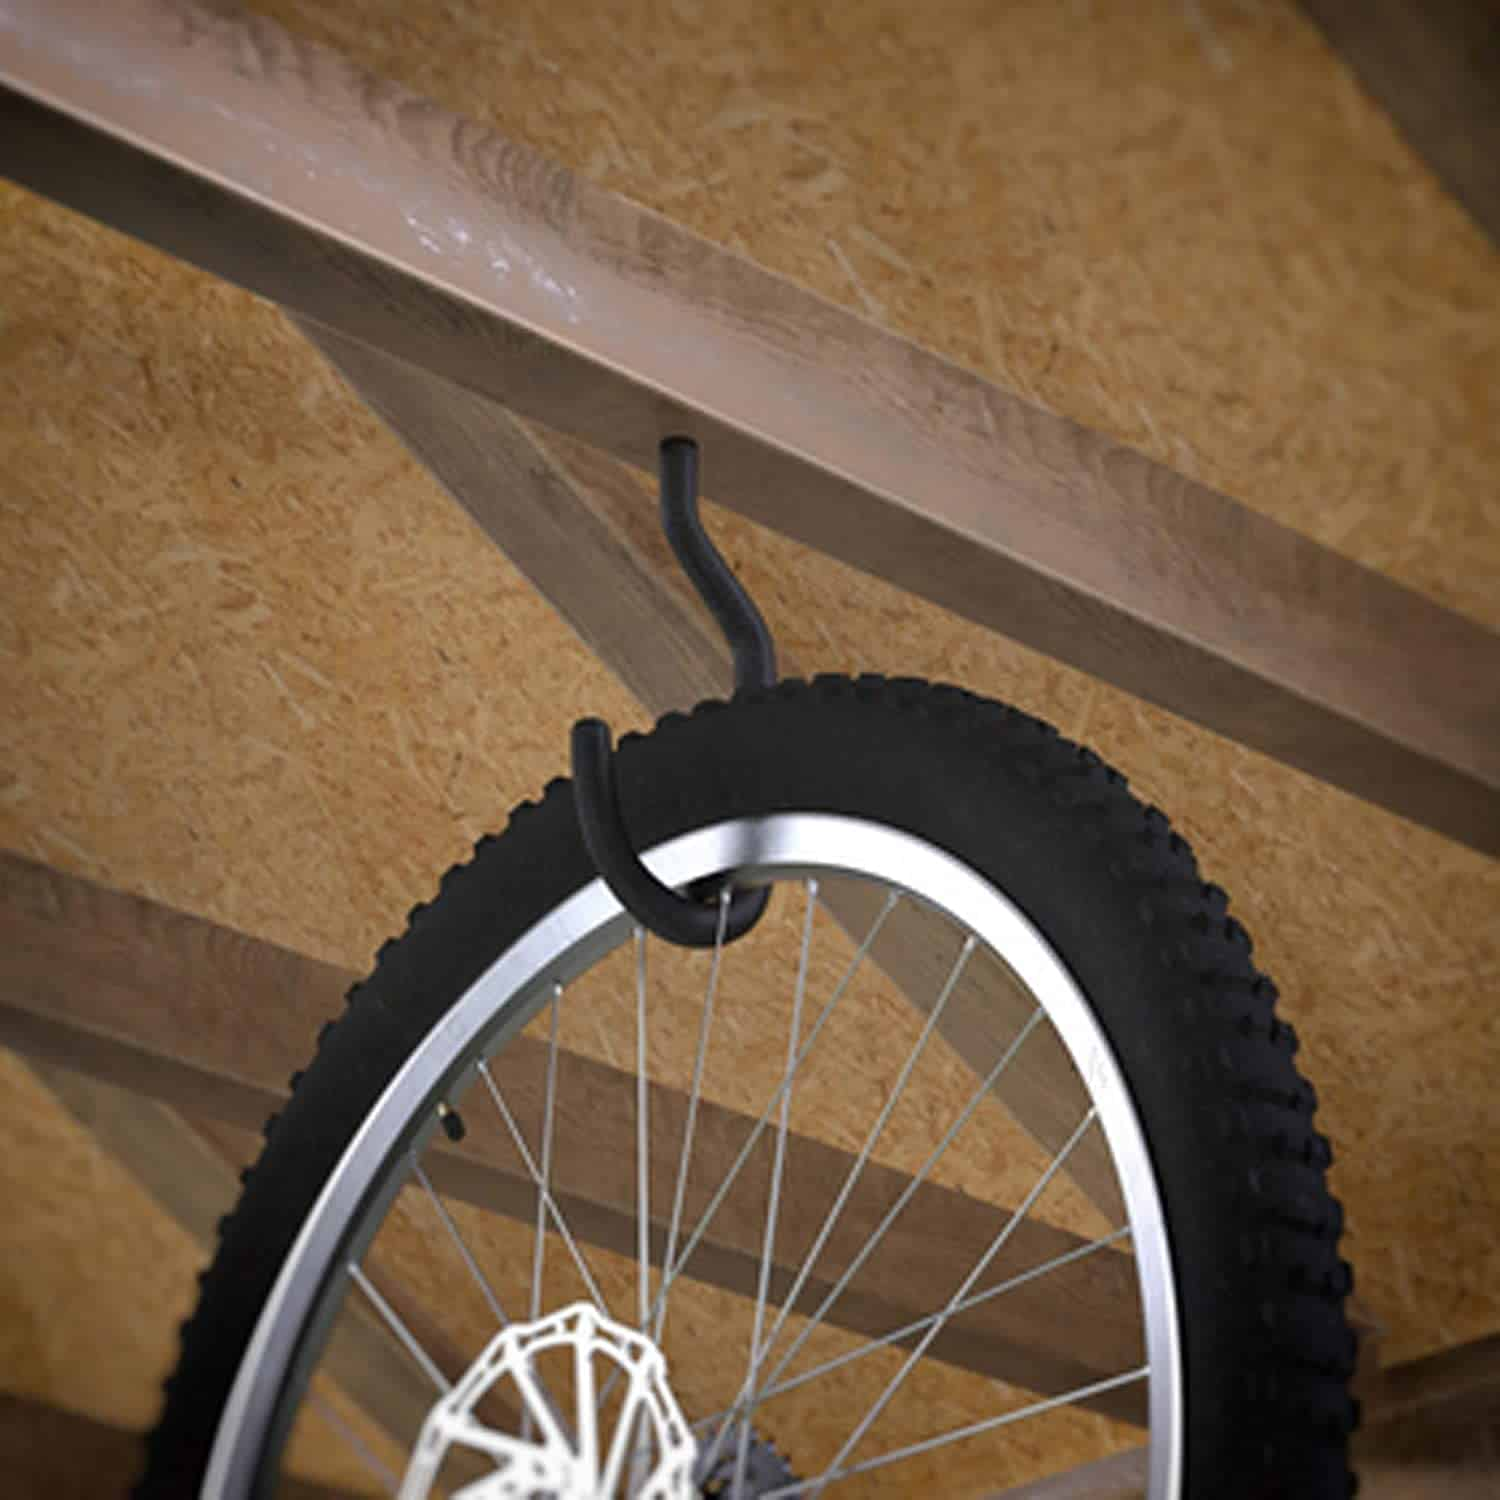 Best Bike Hooks for Ceiling: Stout Max Heavy Duty Bike Storage Hooks